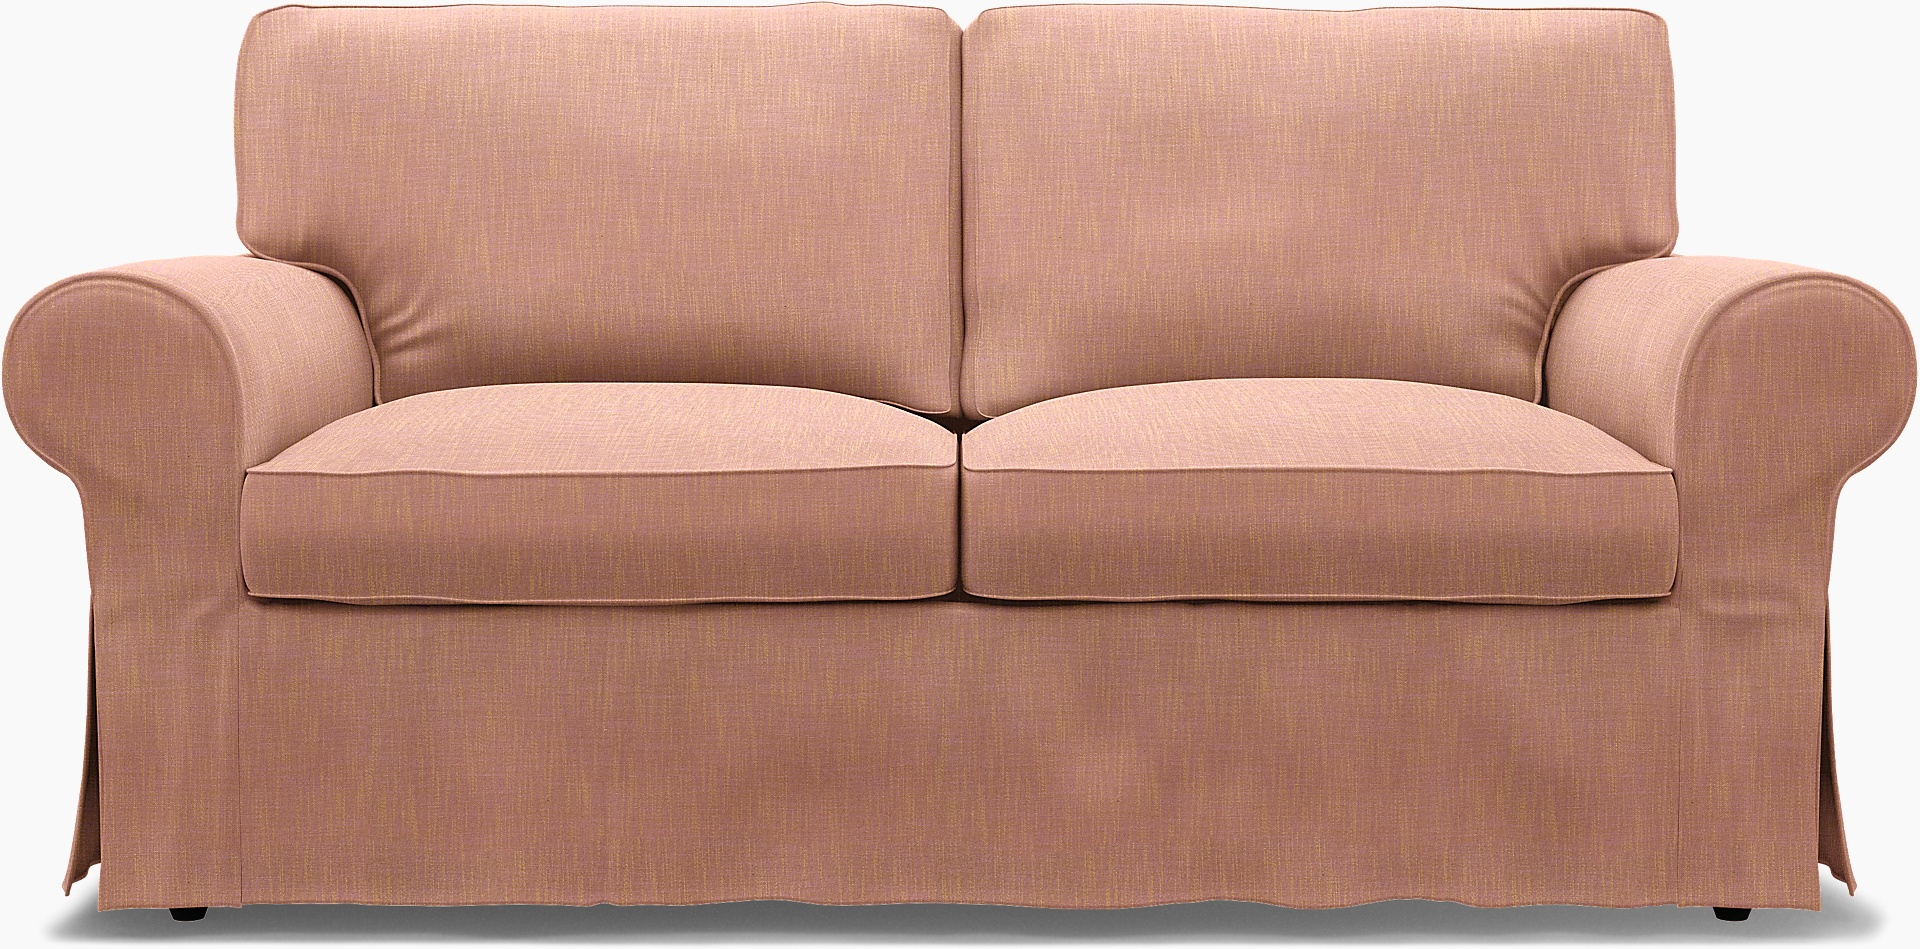 The Foolproof Premium Quality Slipcovers Approach